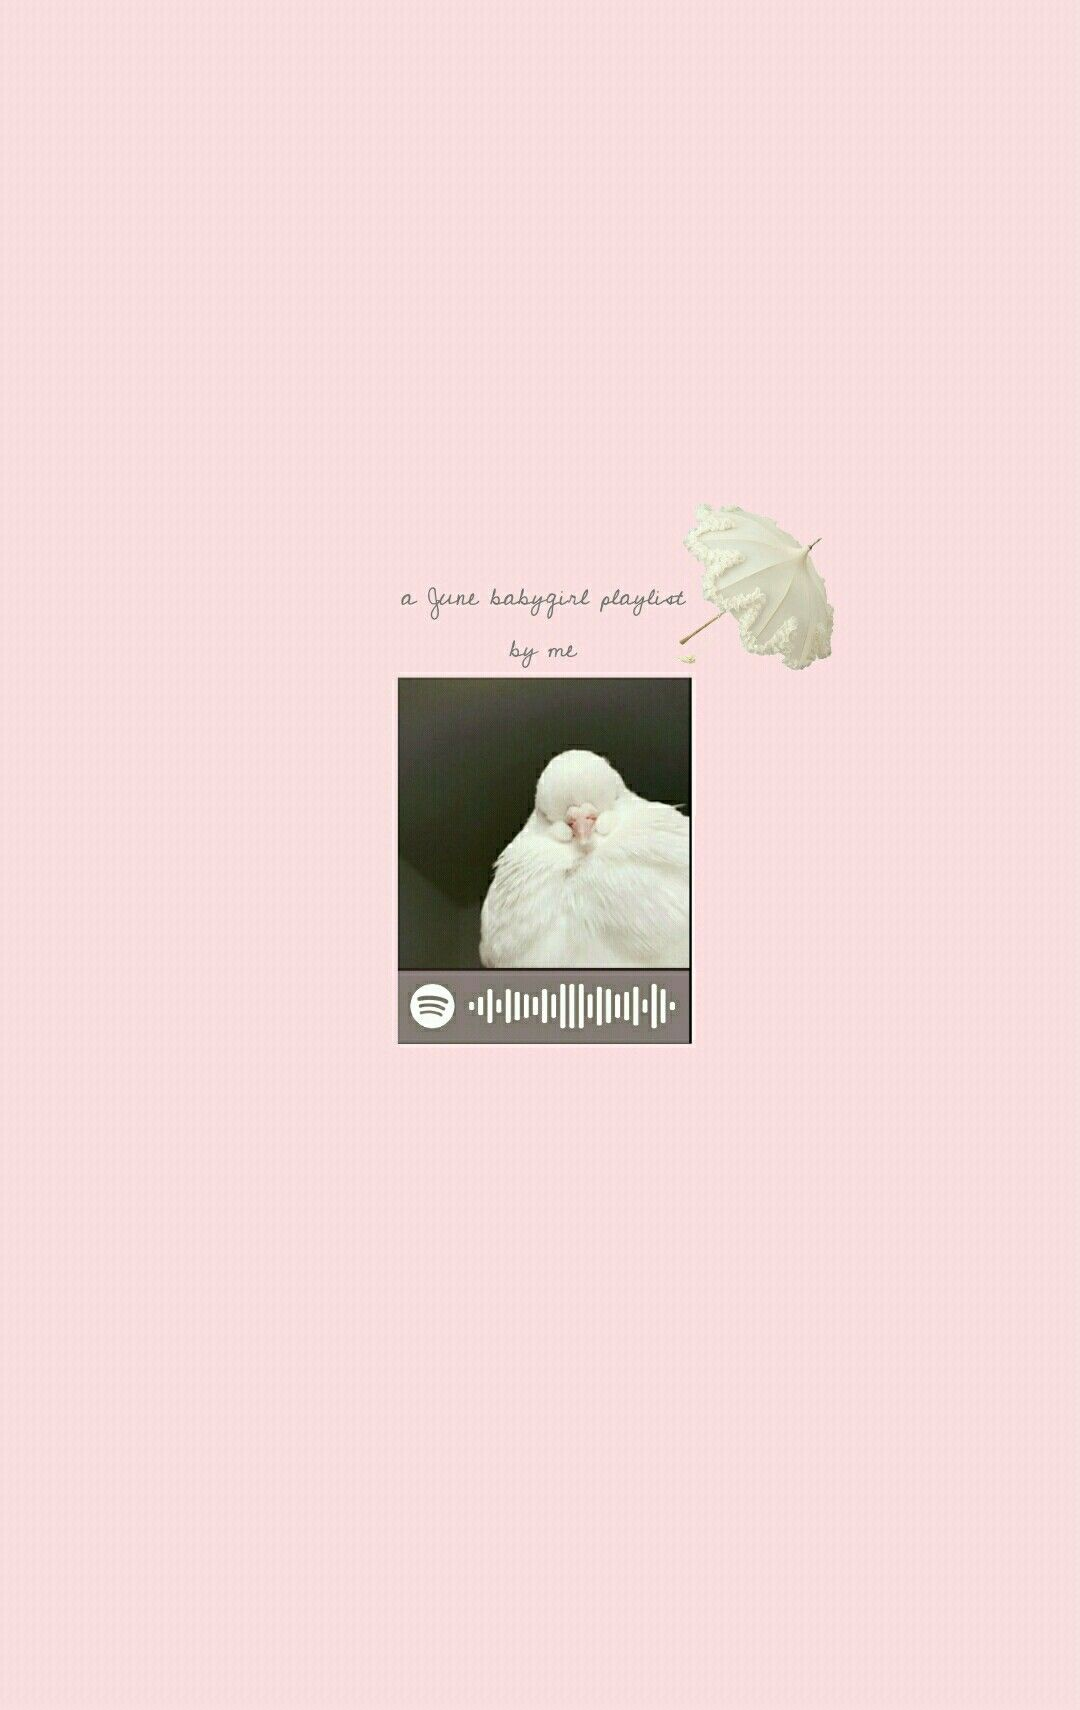 Pin on Spotify by me